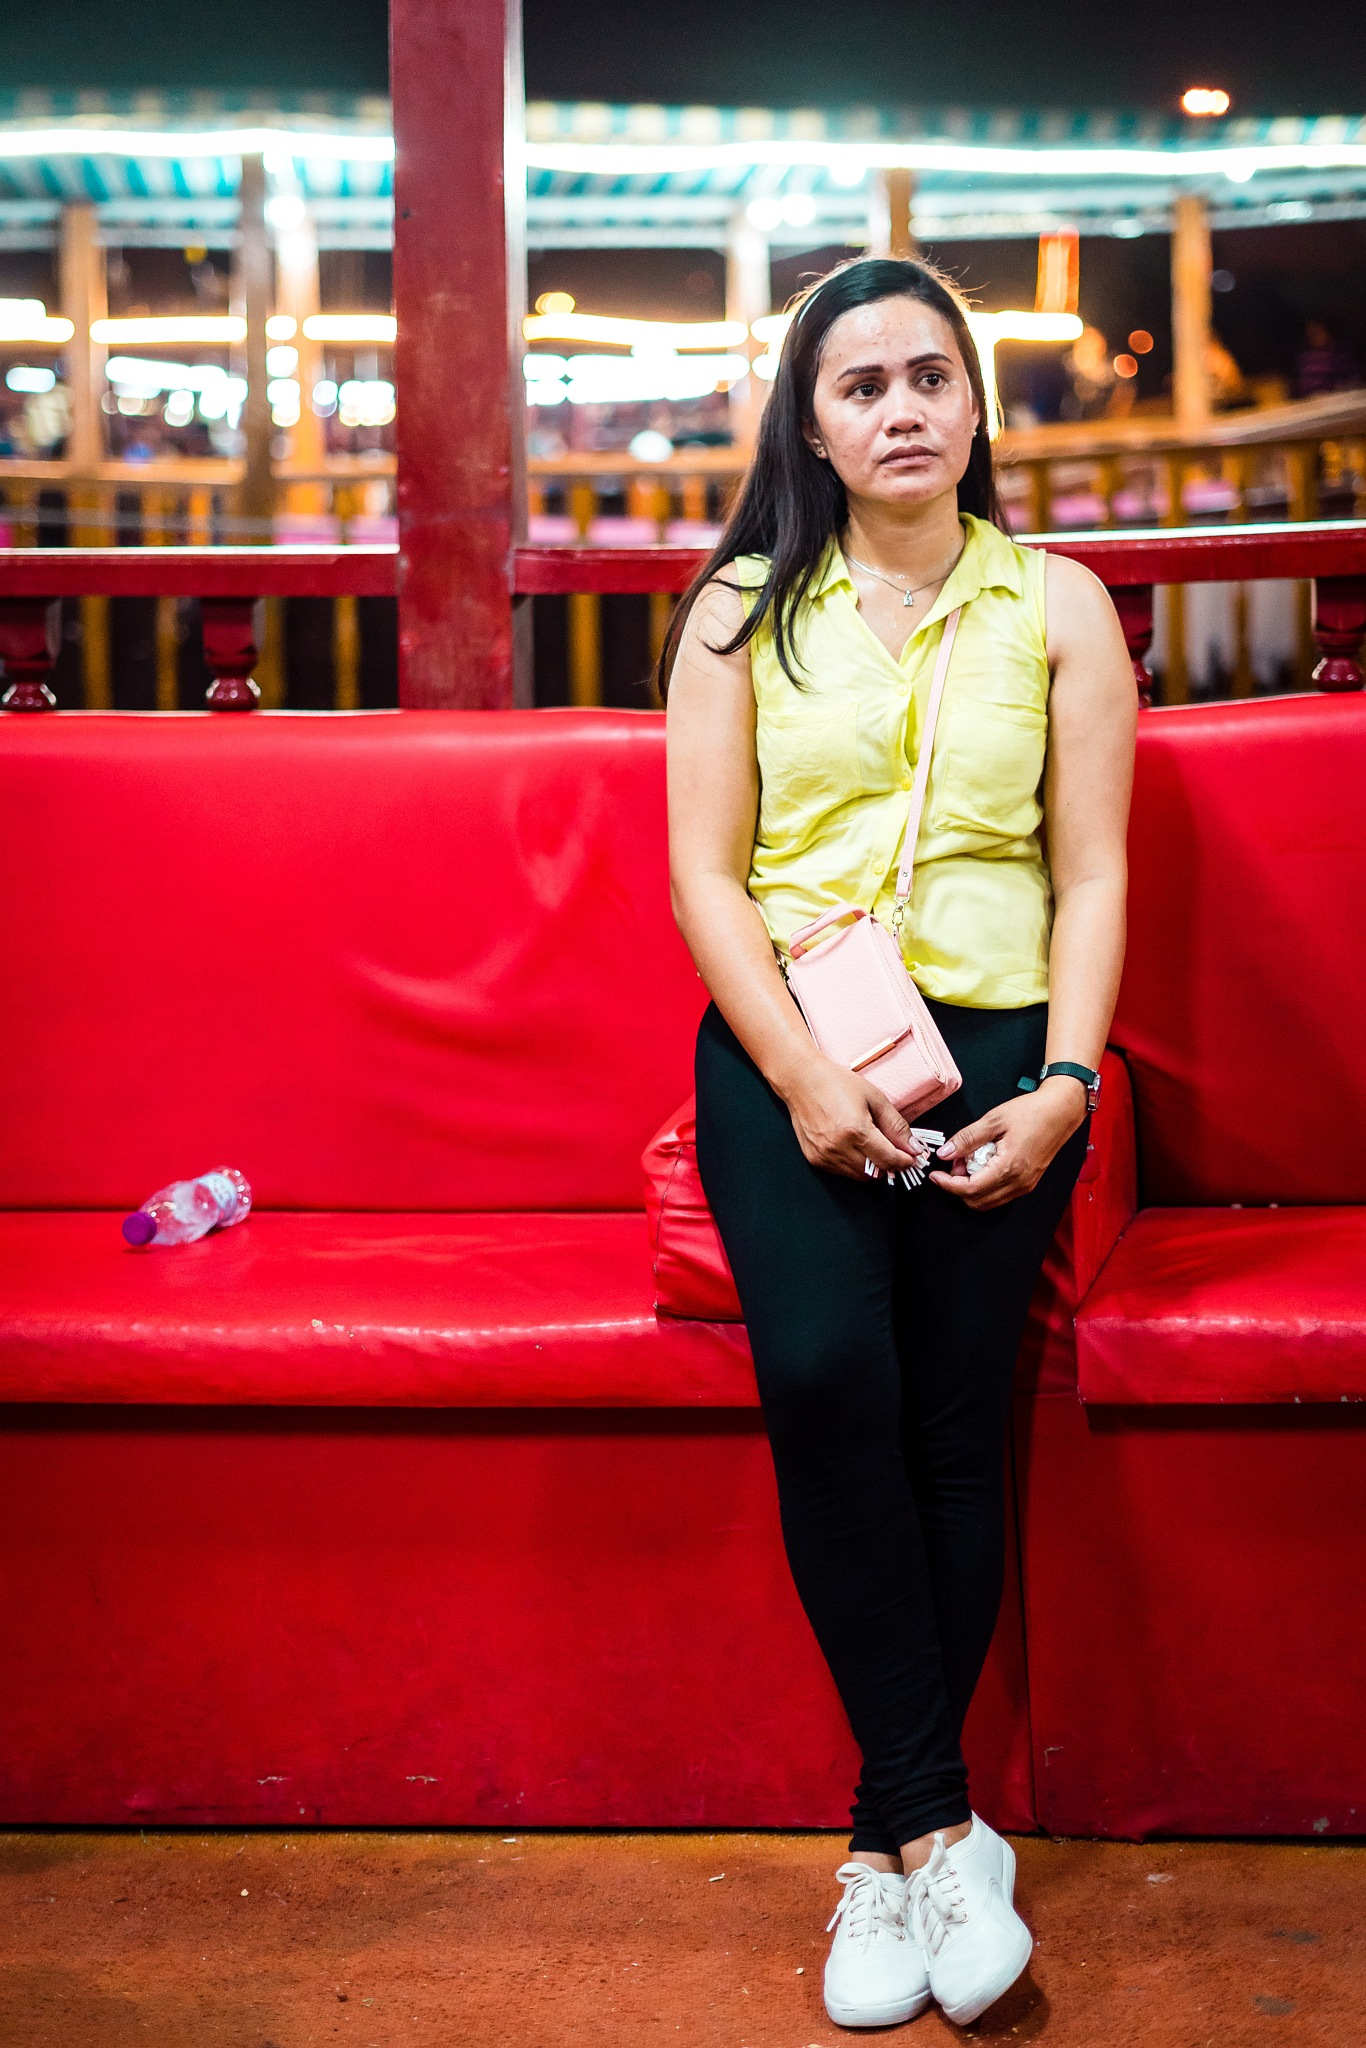 Faces of Doha 2018 by Bojan Mustur